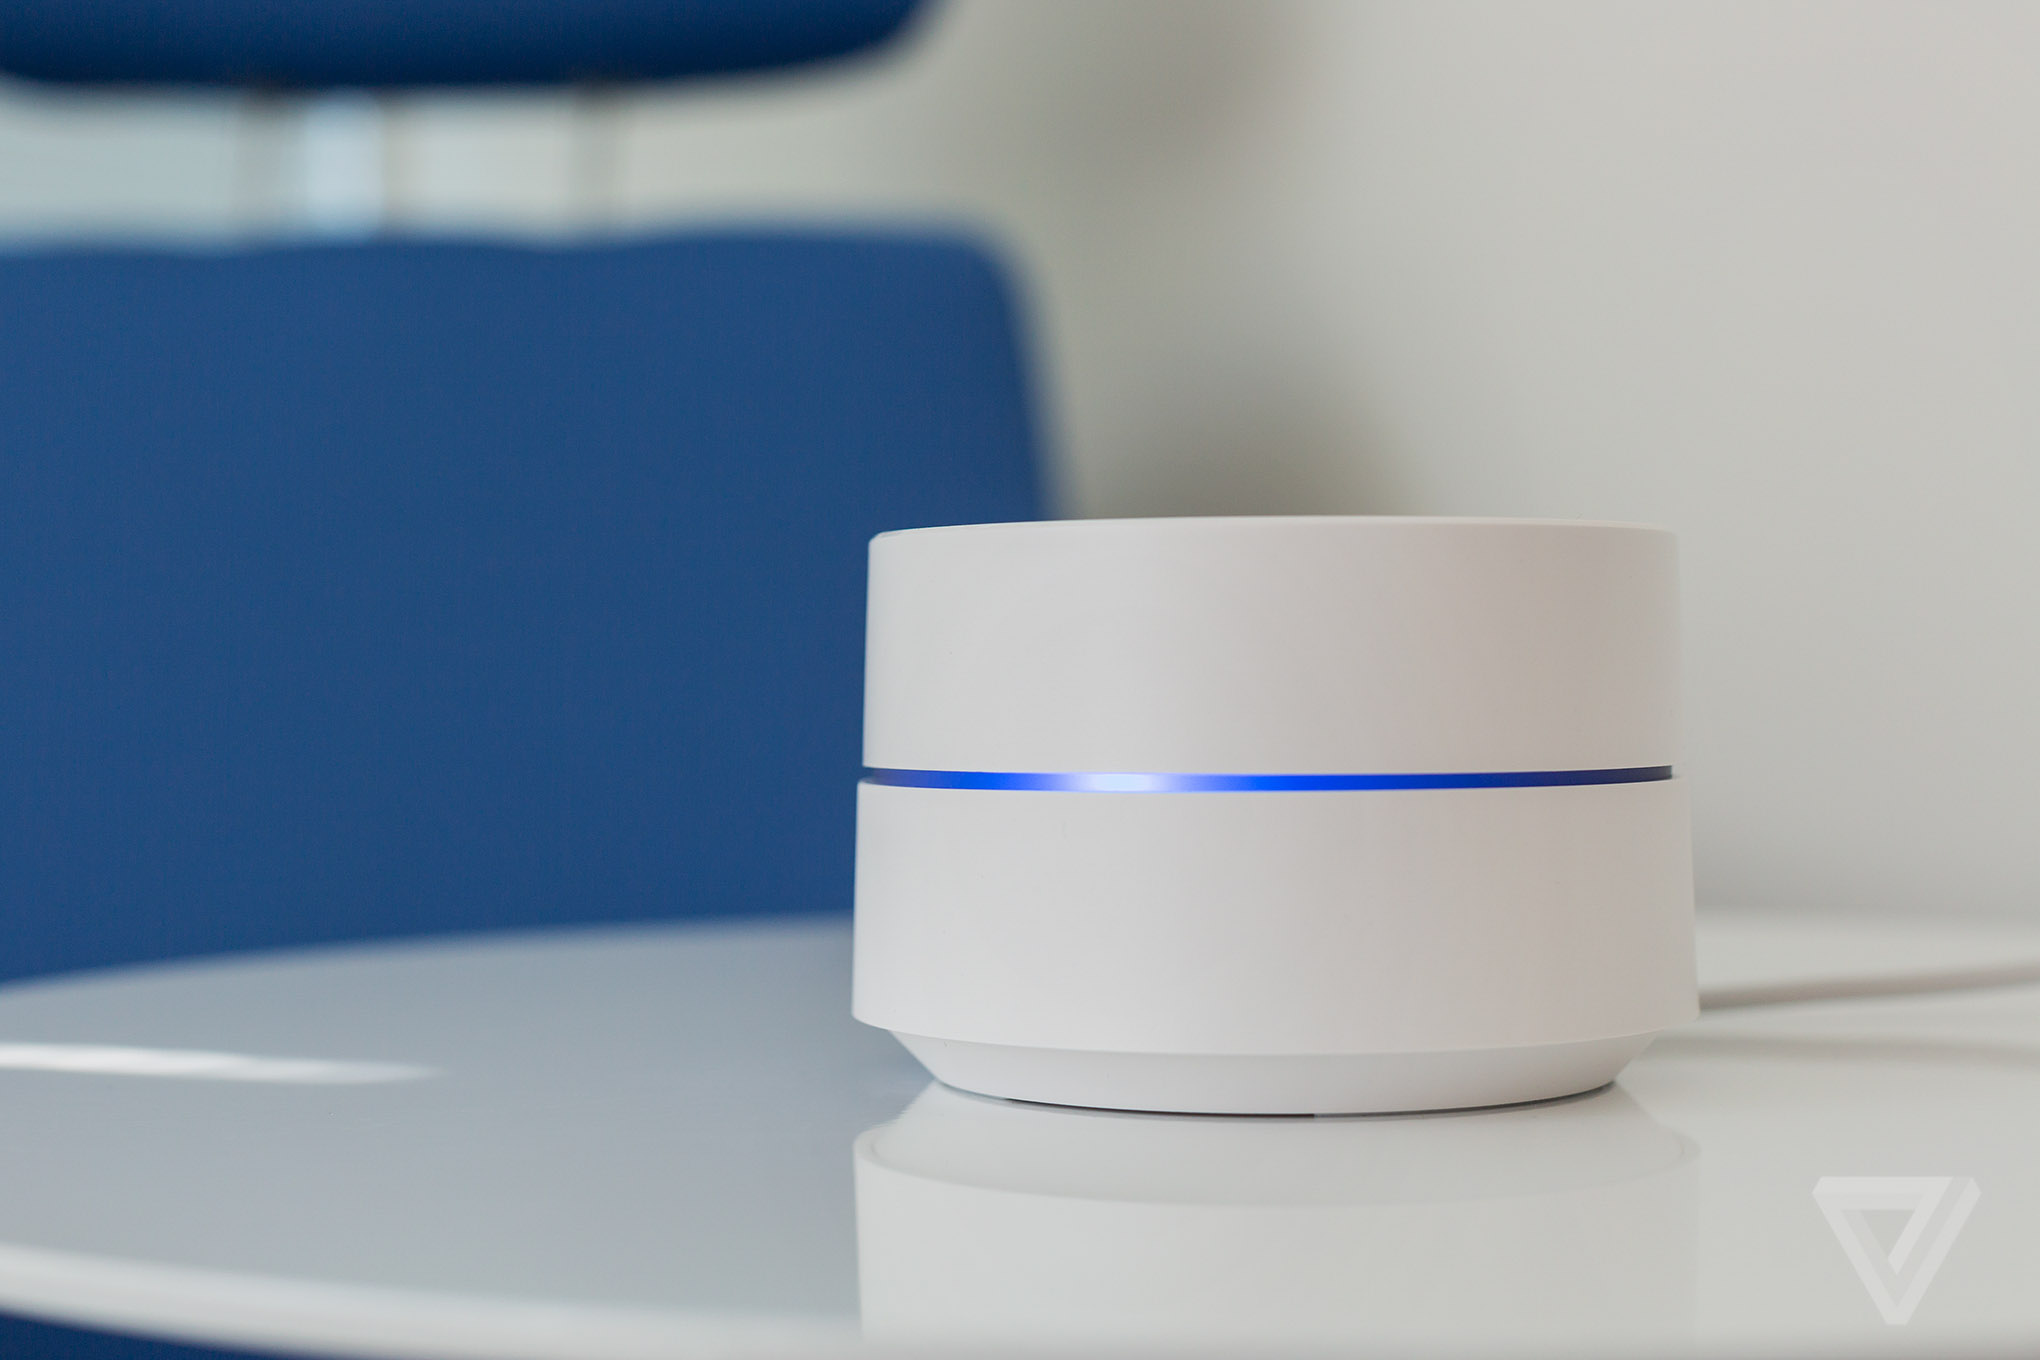 google-wifi-3 pack-acanac